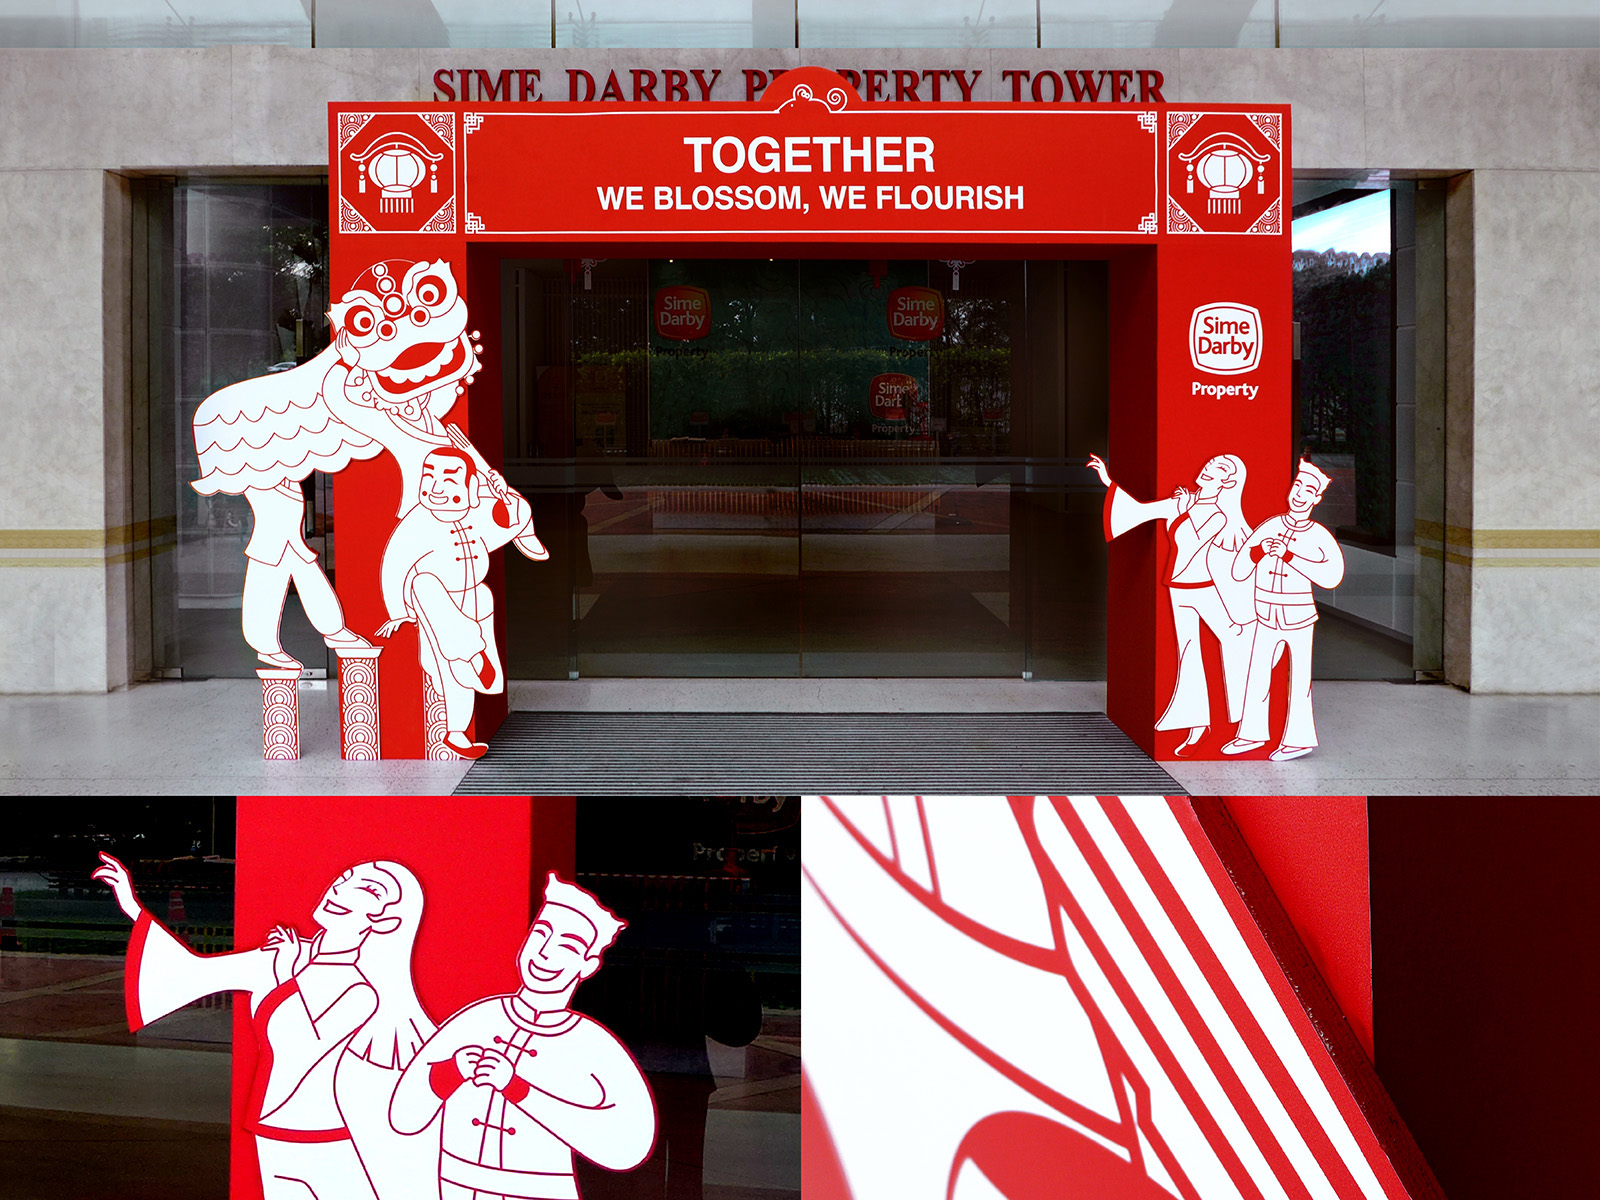 Sime Darby Chinese New Year 2020 campaign event decorations with red packet or ang pow art direction, arch design and close up